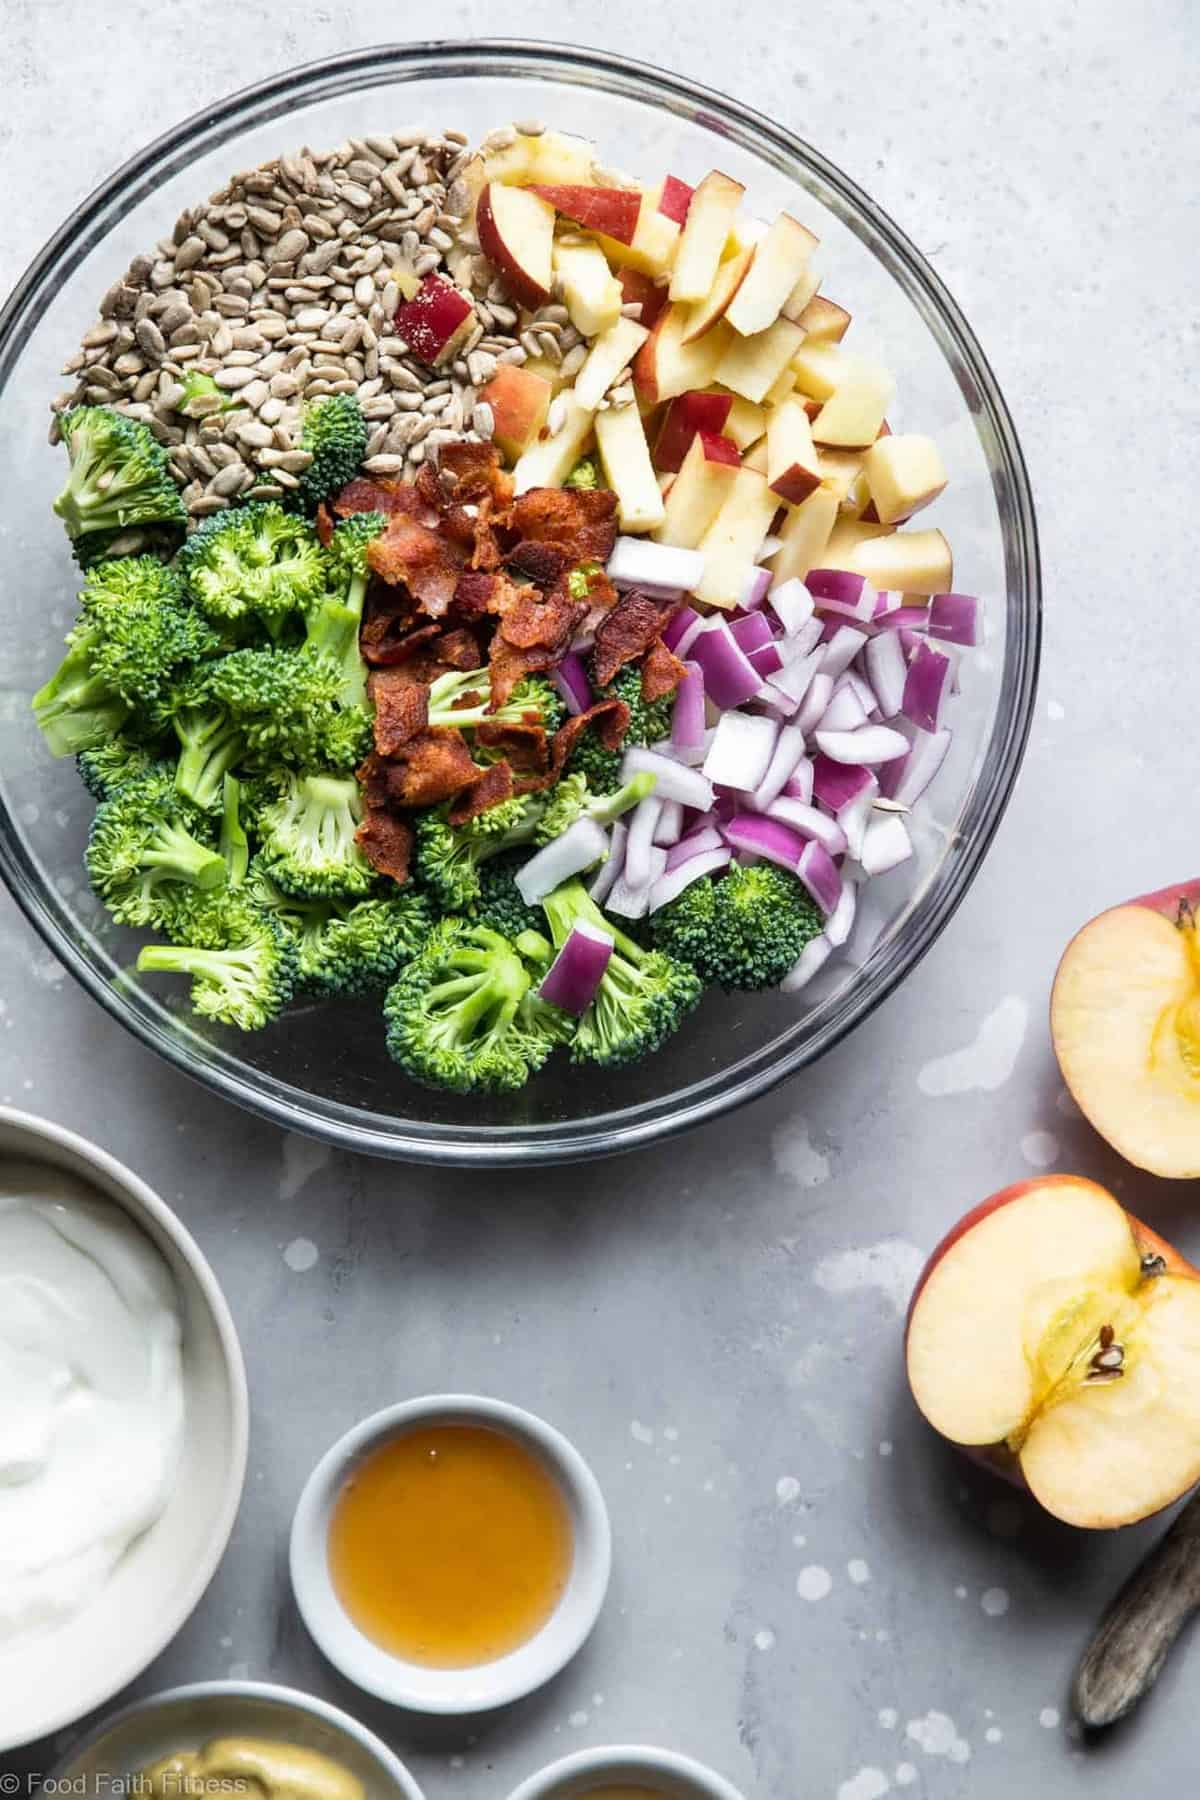 Healthy Broccoli Apple Salad with Greek Yogurt  - This Greek yogurt broccoli salad is an easy, gluten free and healthy side dish that even kids will like! It's protein packed and makes great leftovers! | #Foodfaithfitness |